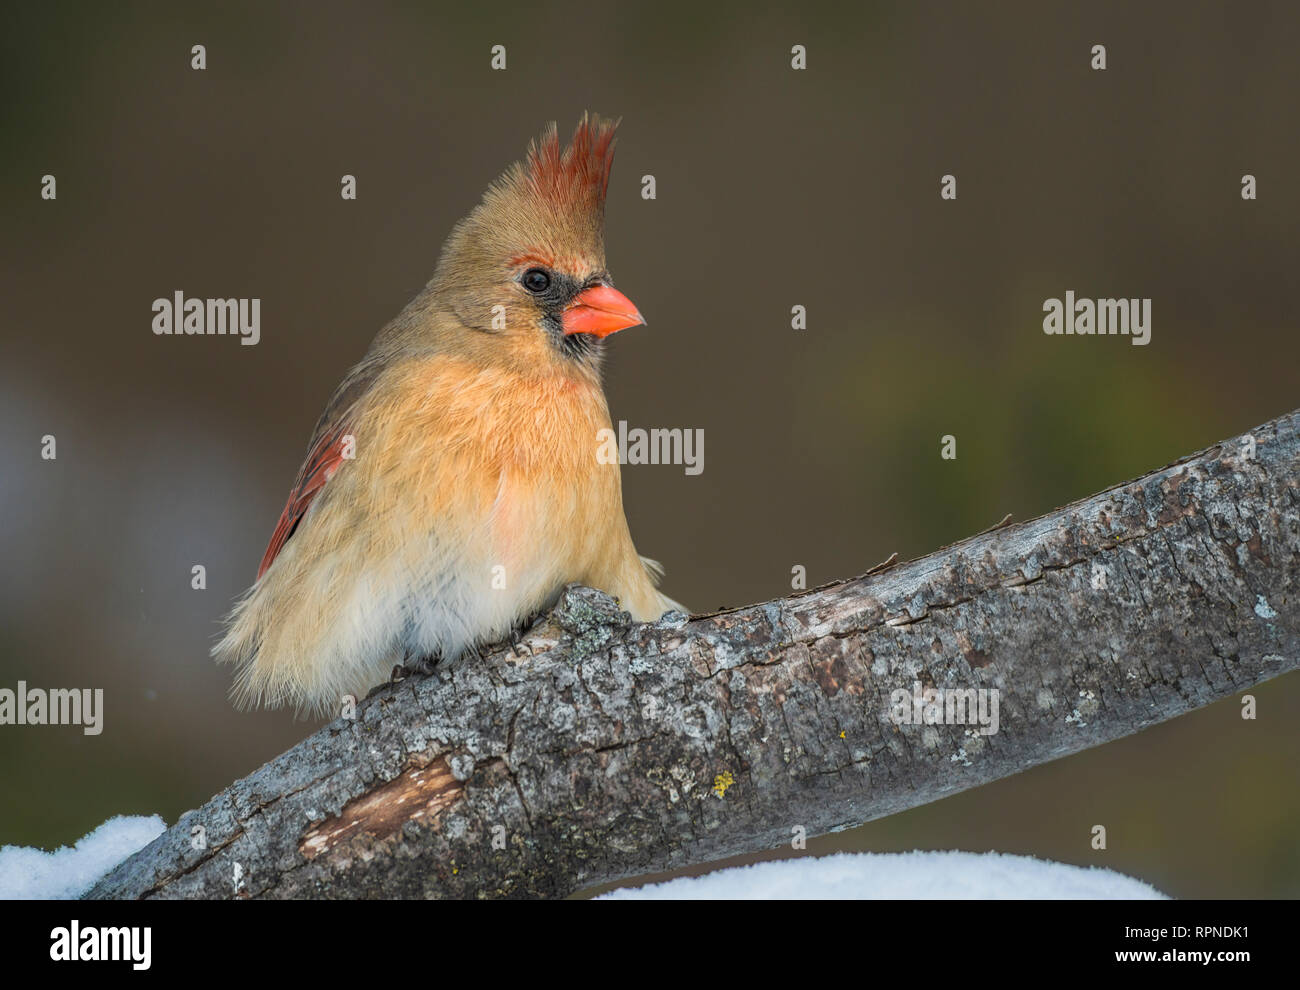 zoology / animals, avian / bird (aves), Female Northern Cardinal (Cardinalis cardinalis) in winter nea, Additional-Rights-Clearance-Info-Not-Available Stock Photo